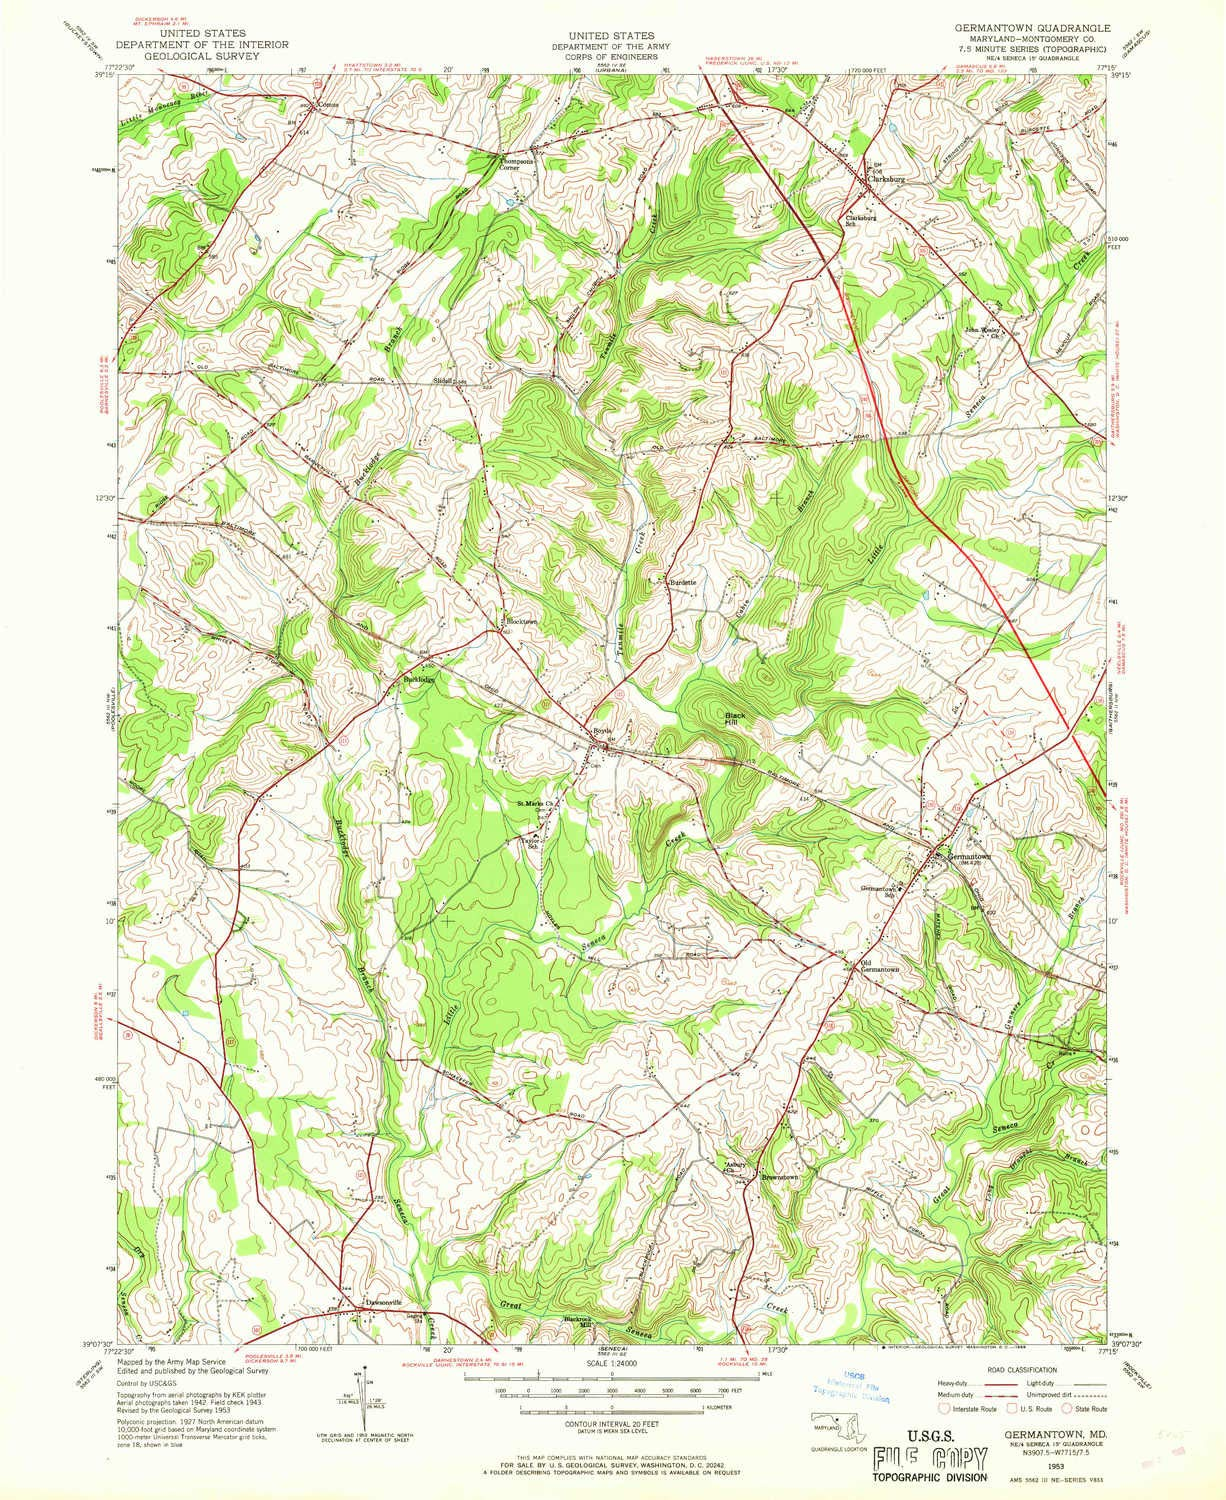 Amazon.com : YellowMaps Germantown MD topo map, 1:24000 ... on germantown nyc, wilmington md map, gatlinburg md map, tracys landing md map, somerset md map, clifton md map, greenland beach md map, whaleyville md map, bryans road md map, russett md map, colesville md map, germantown ymca, hamilton md map, coltons point md map, boston md map, harrisburg md map, saint michaels md map, virginia md map, oakton md map, gaithersburg md map,